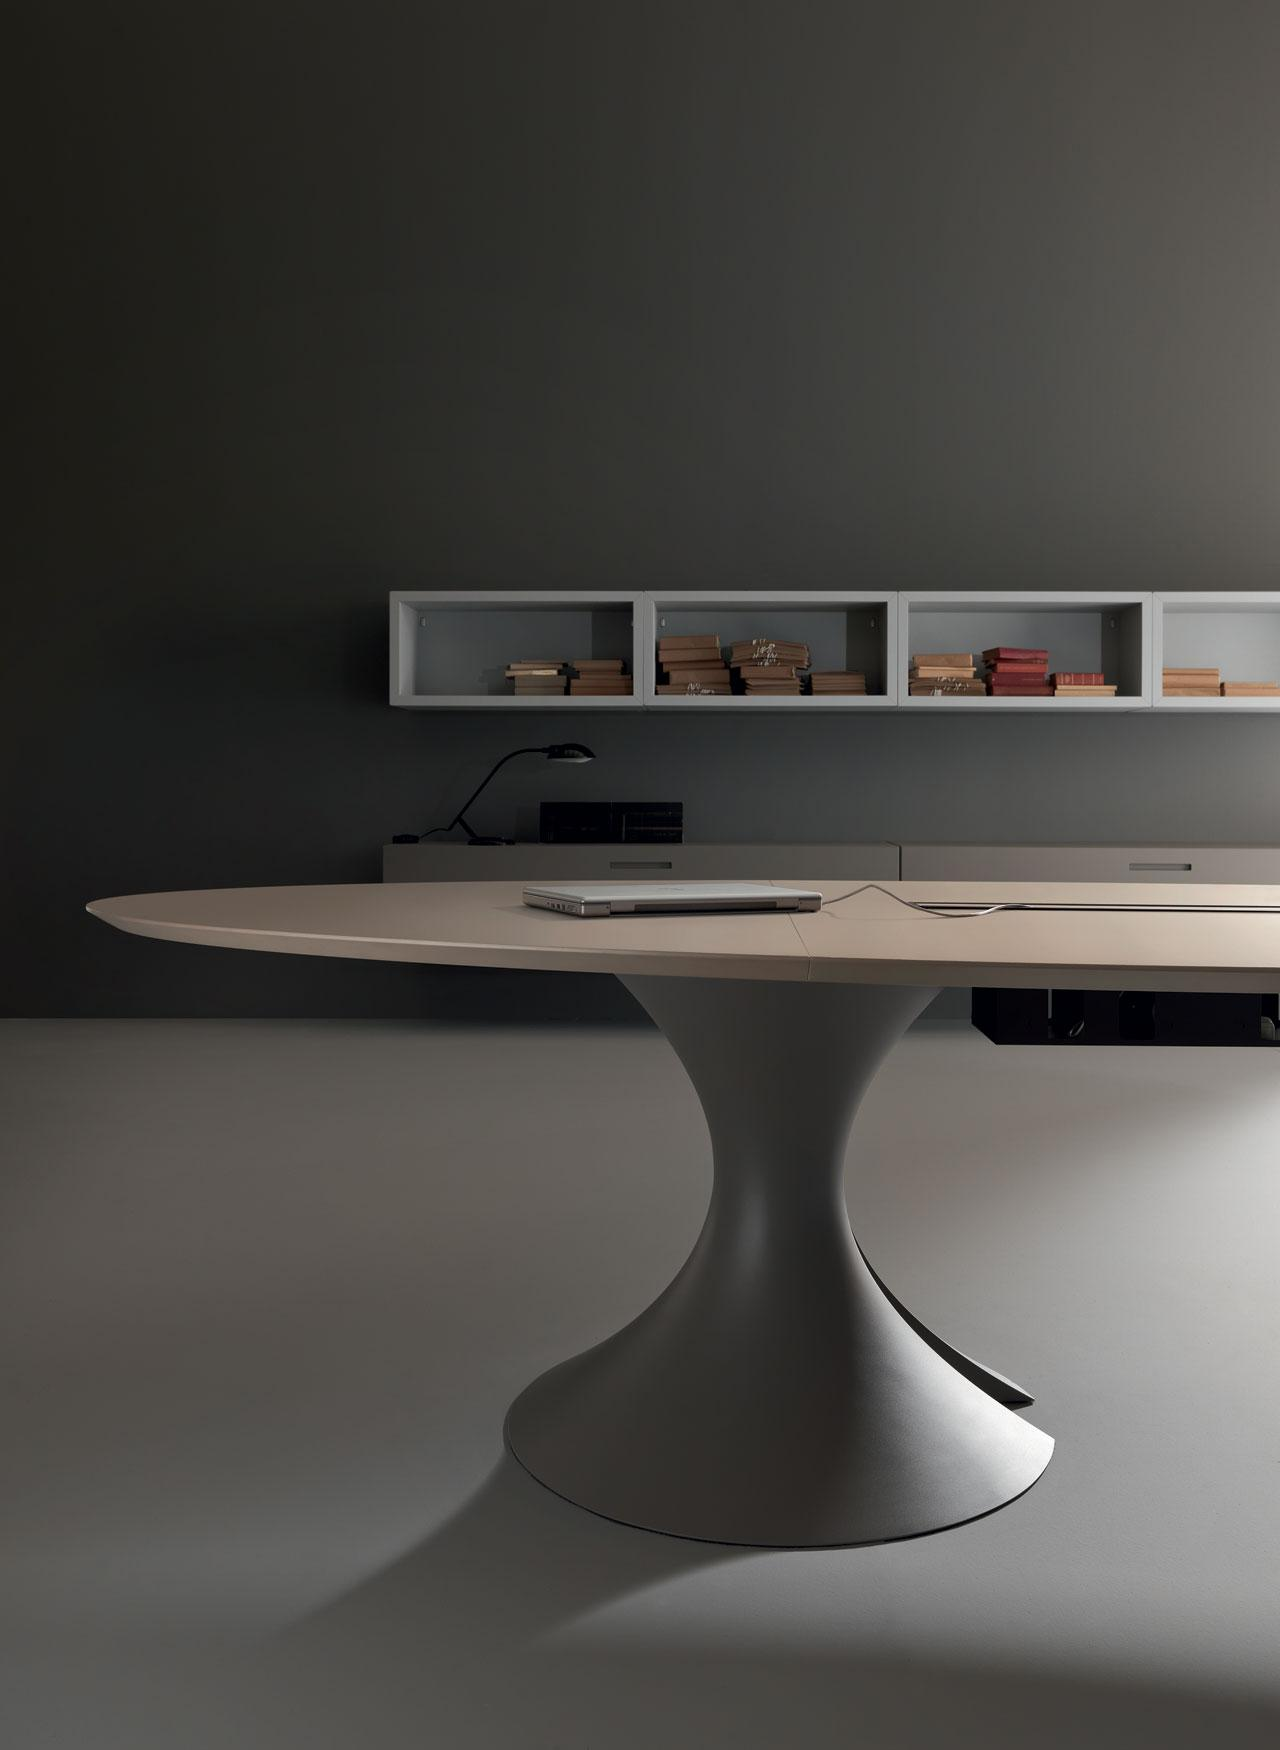 meeting table executive office managerial mario mazzer furniture stores shops design delivery factors market makers manufacturers quality retailers websites